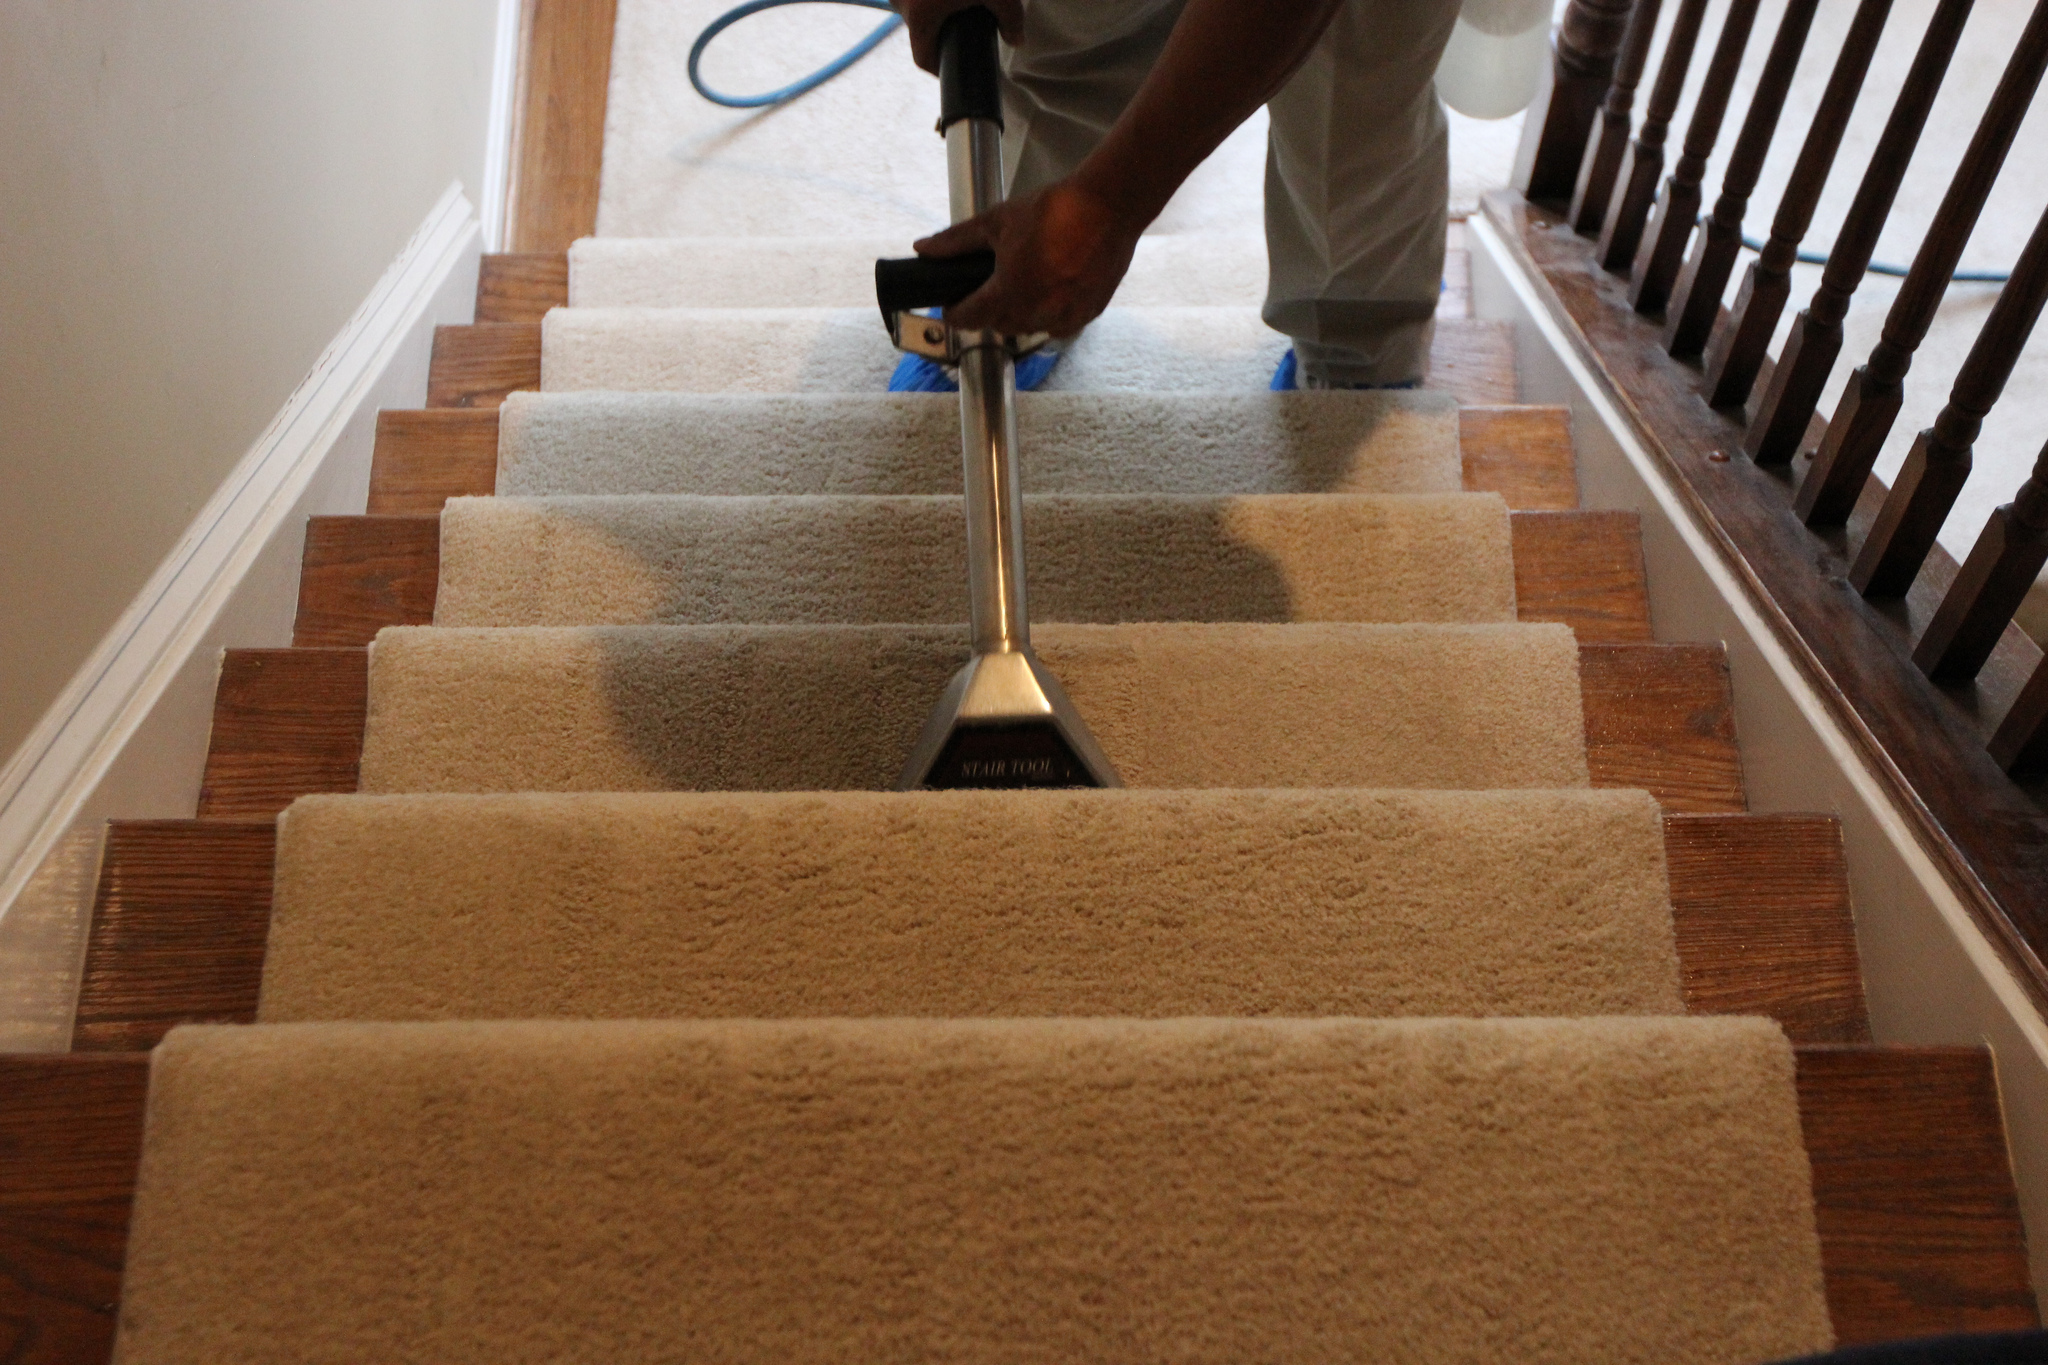 Carpet Cleaning Carpet Cleaning In Alexandria Fairfax Sterling Arlington